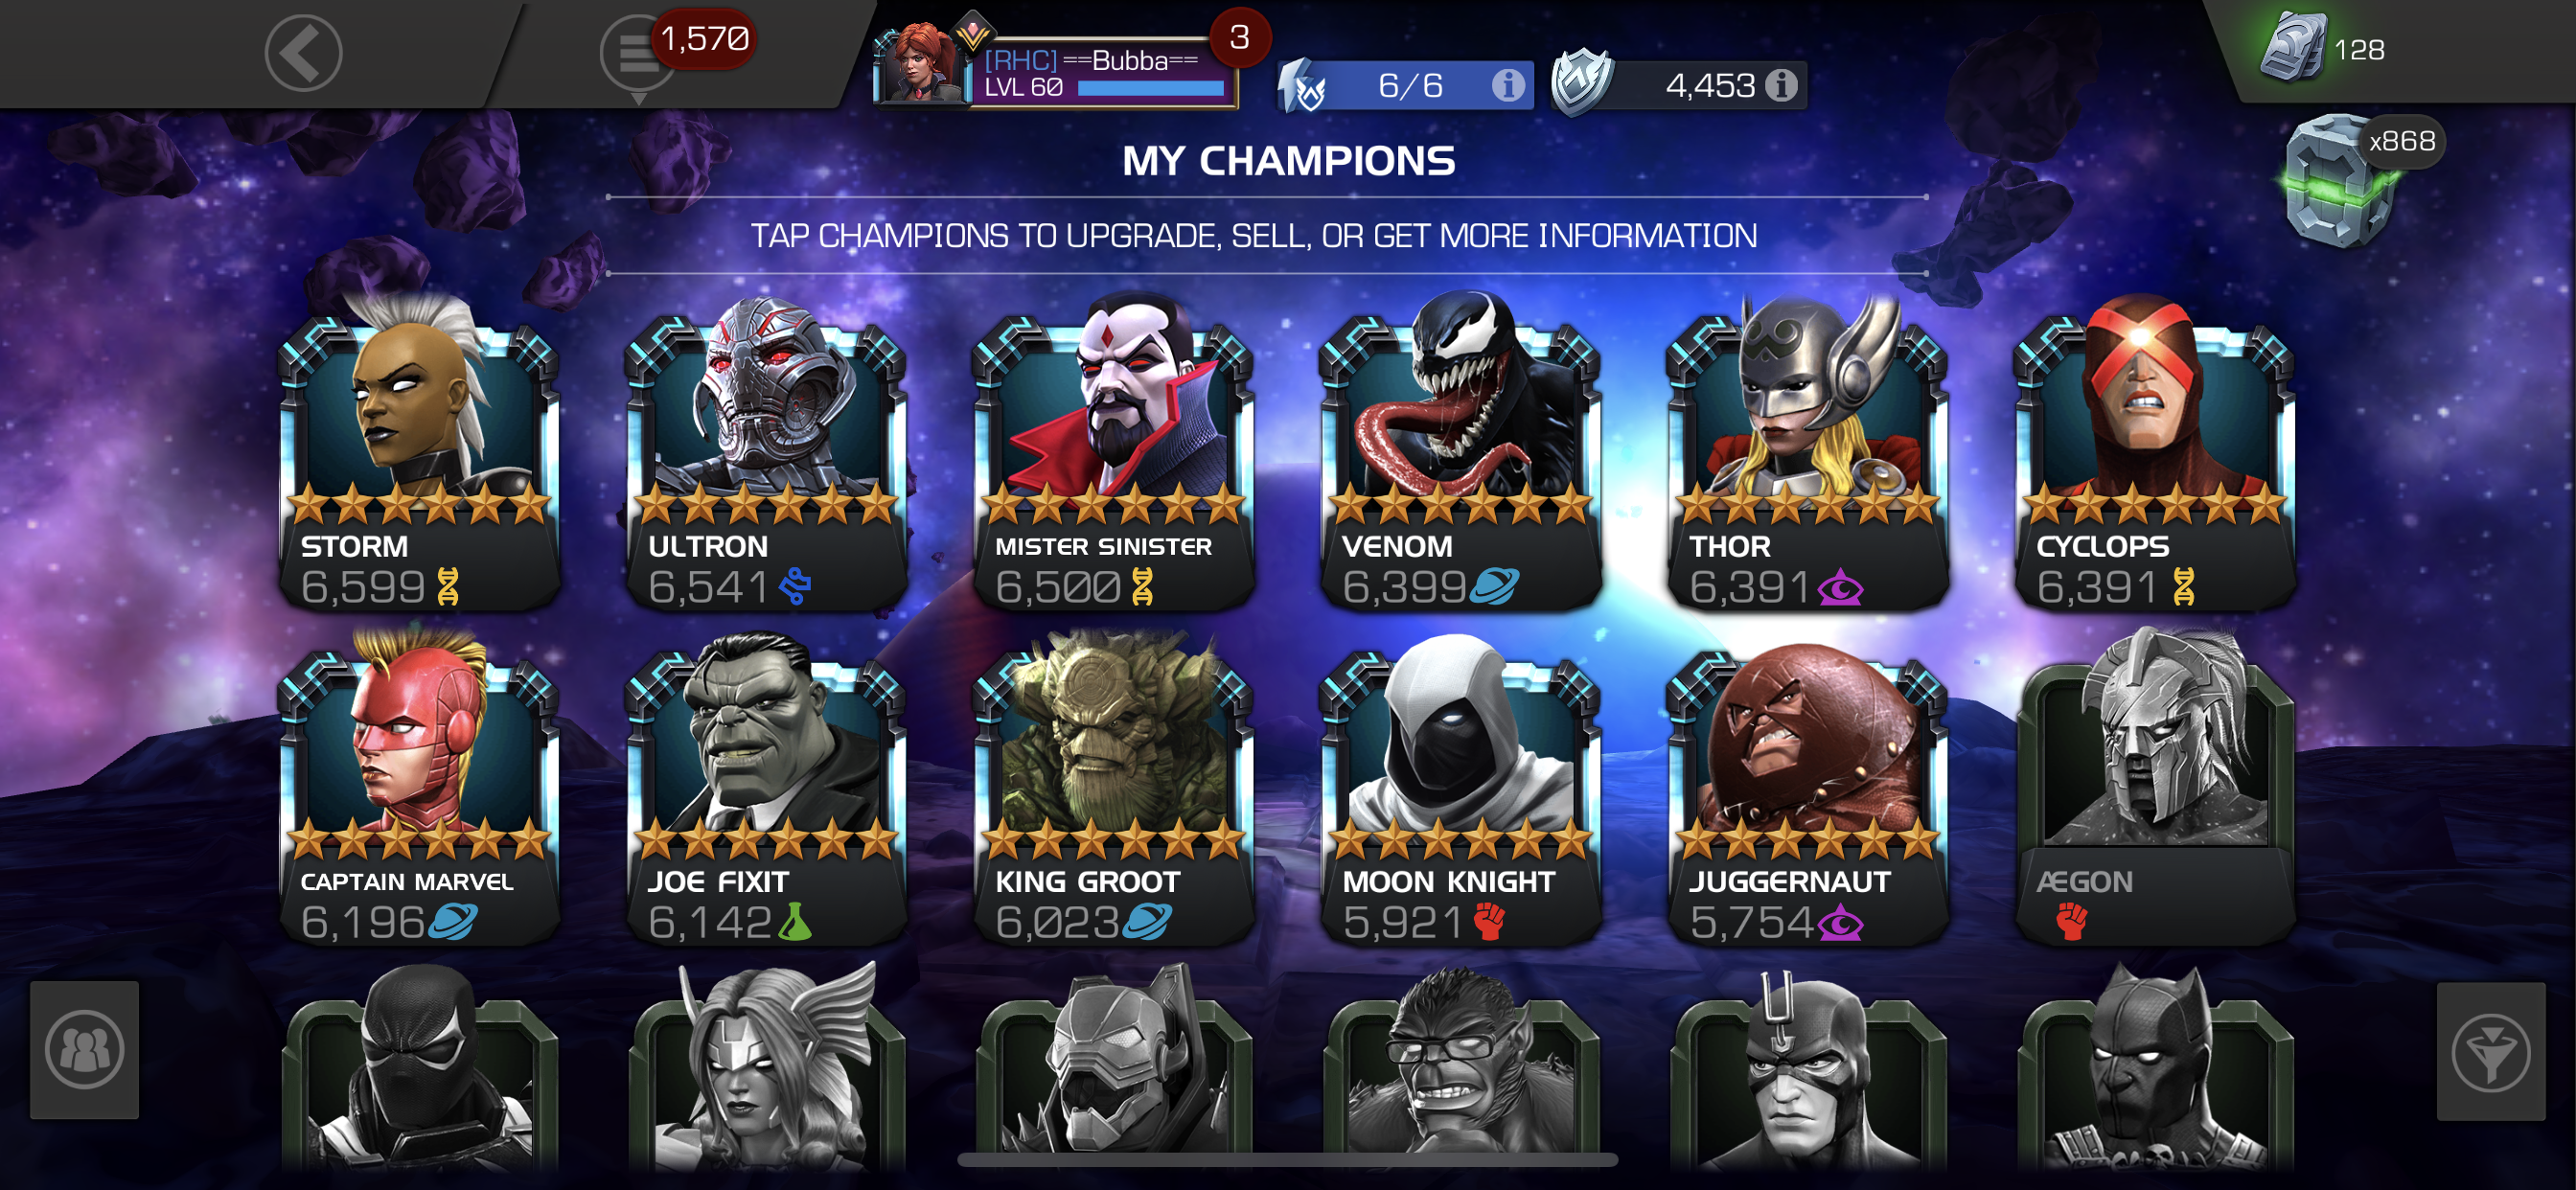 My Current 6 Champions From First To Latest Page 5 Marvel Contest Of Champions Stay golden, ponyboy by a wolf. contest of champions forum marvel contest of champions